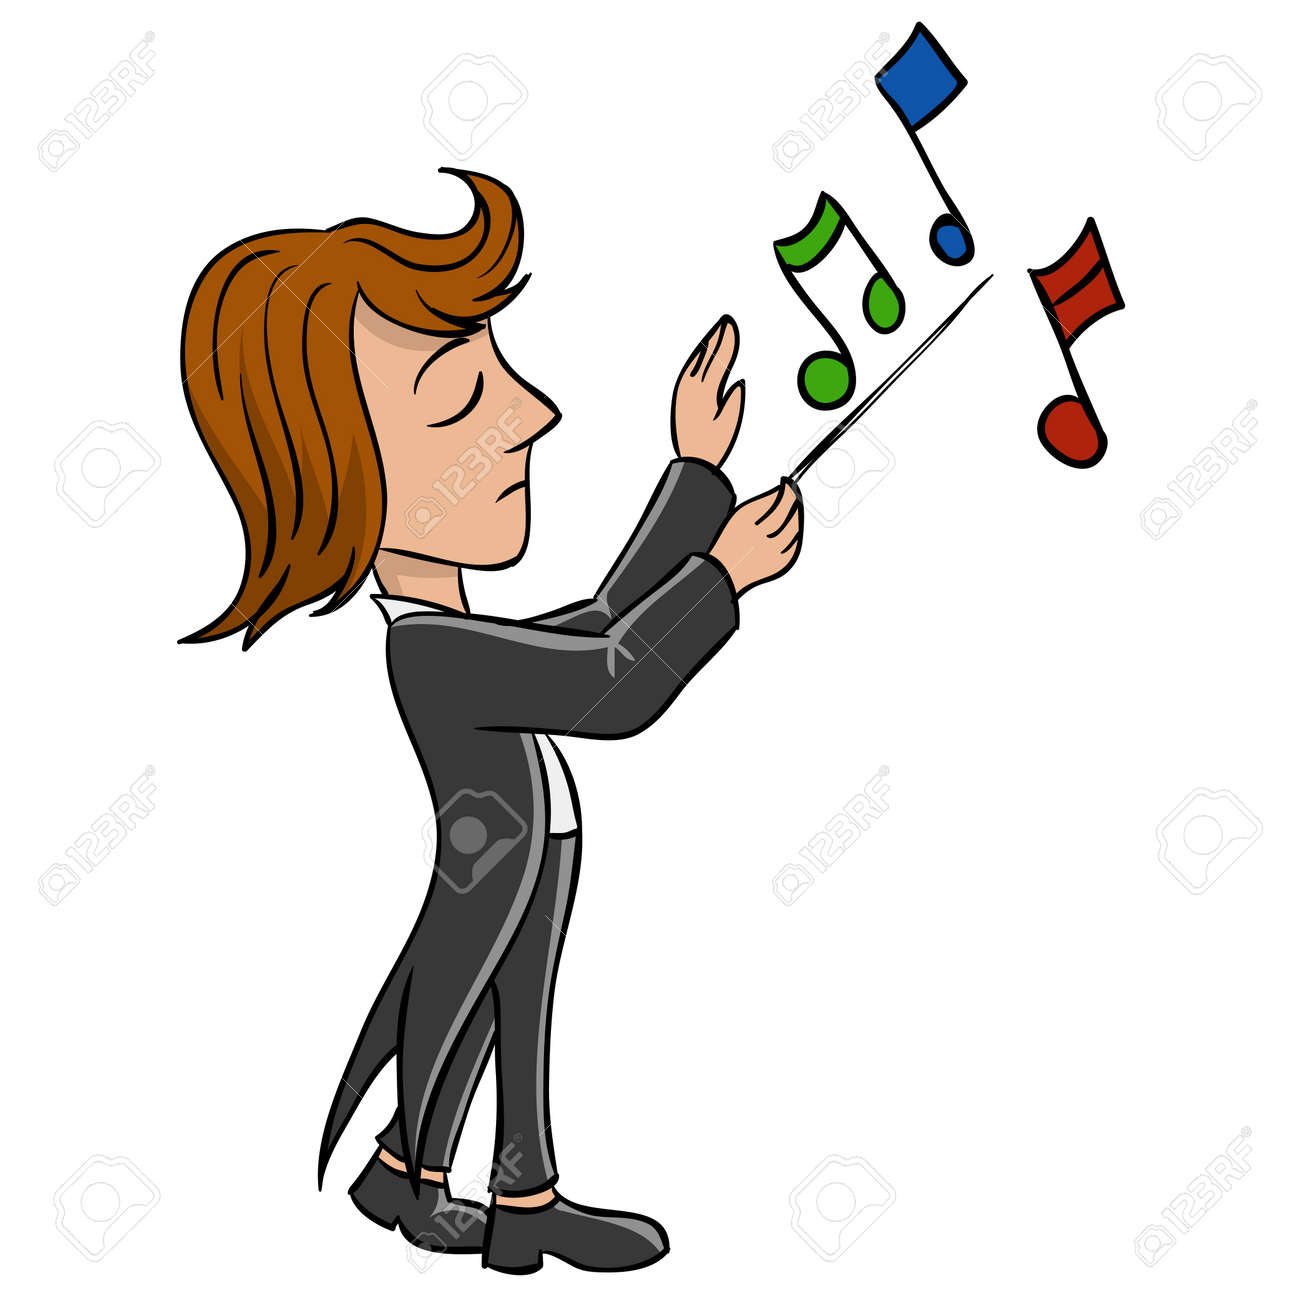 209 Conductor Hands Cliparts, Stock Vector And Royalty Free ...